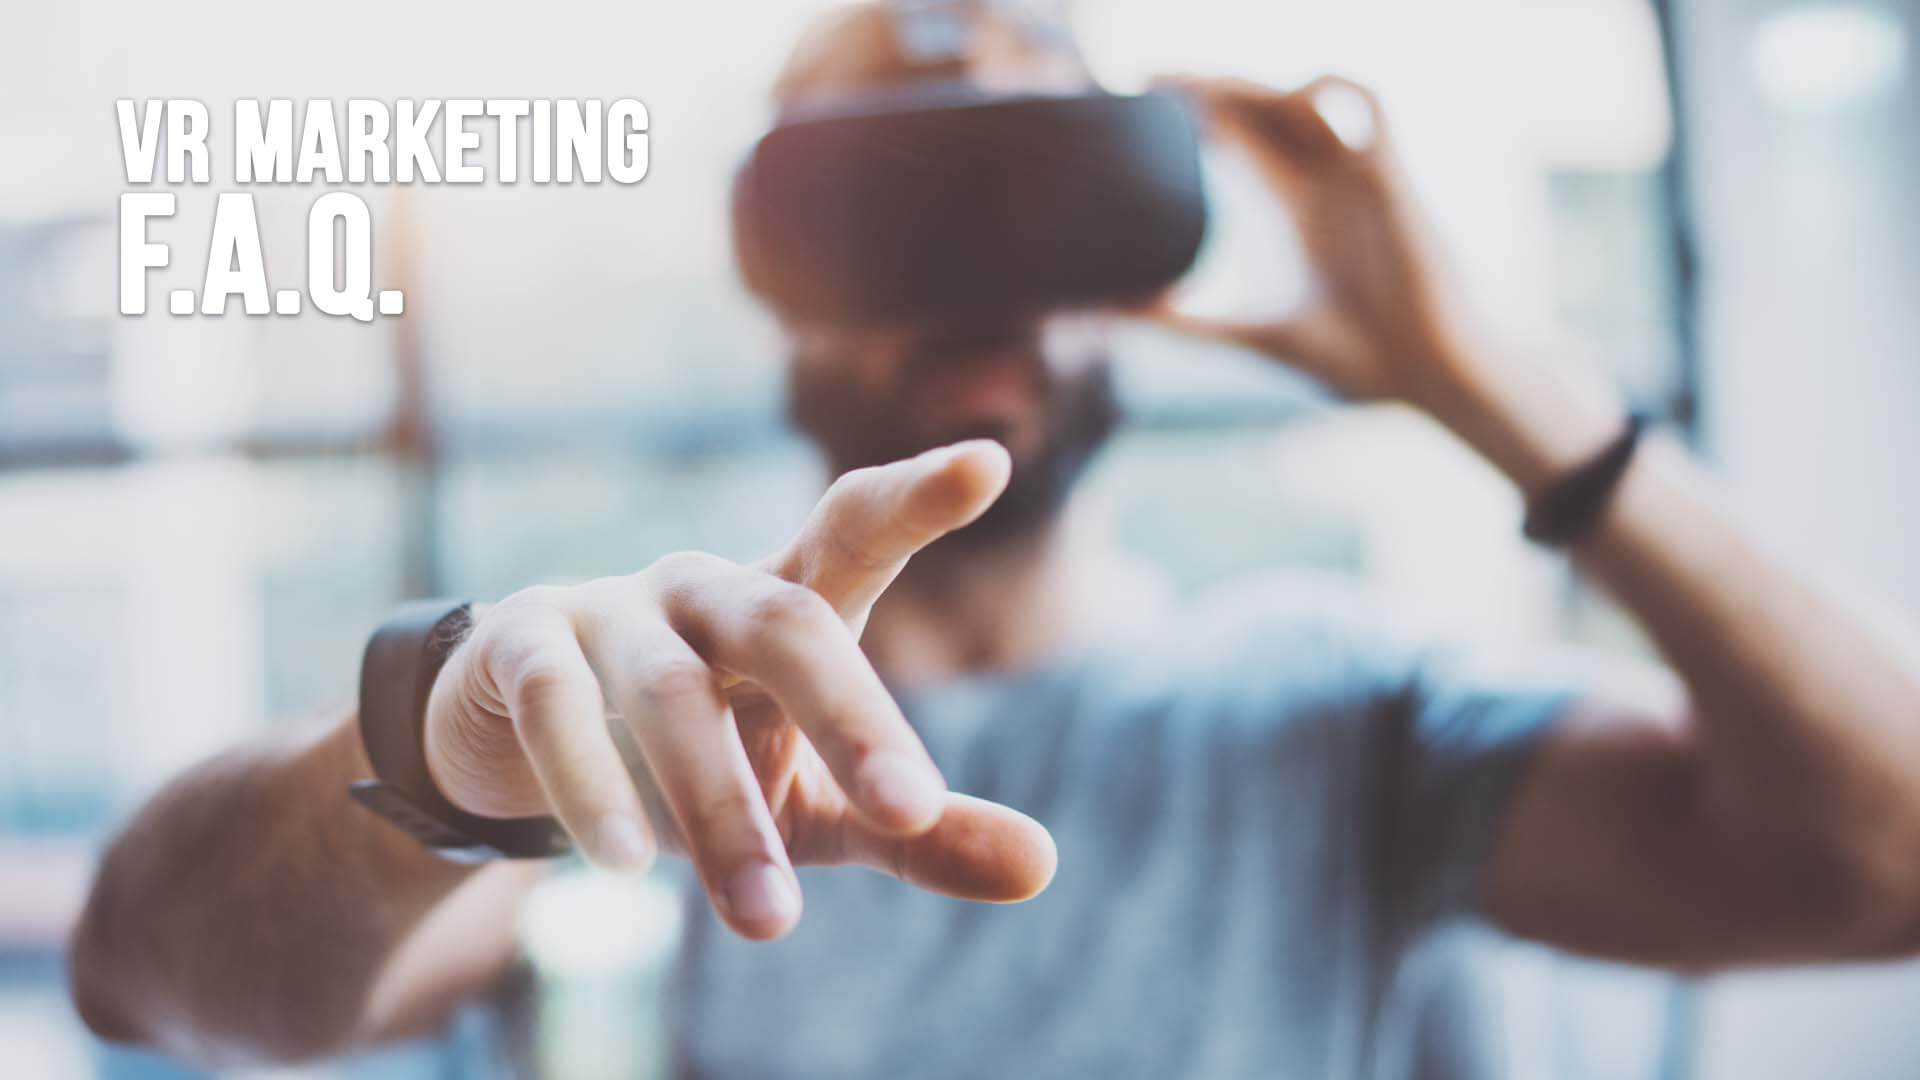 vr marketing faq